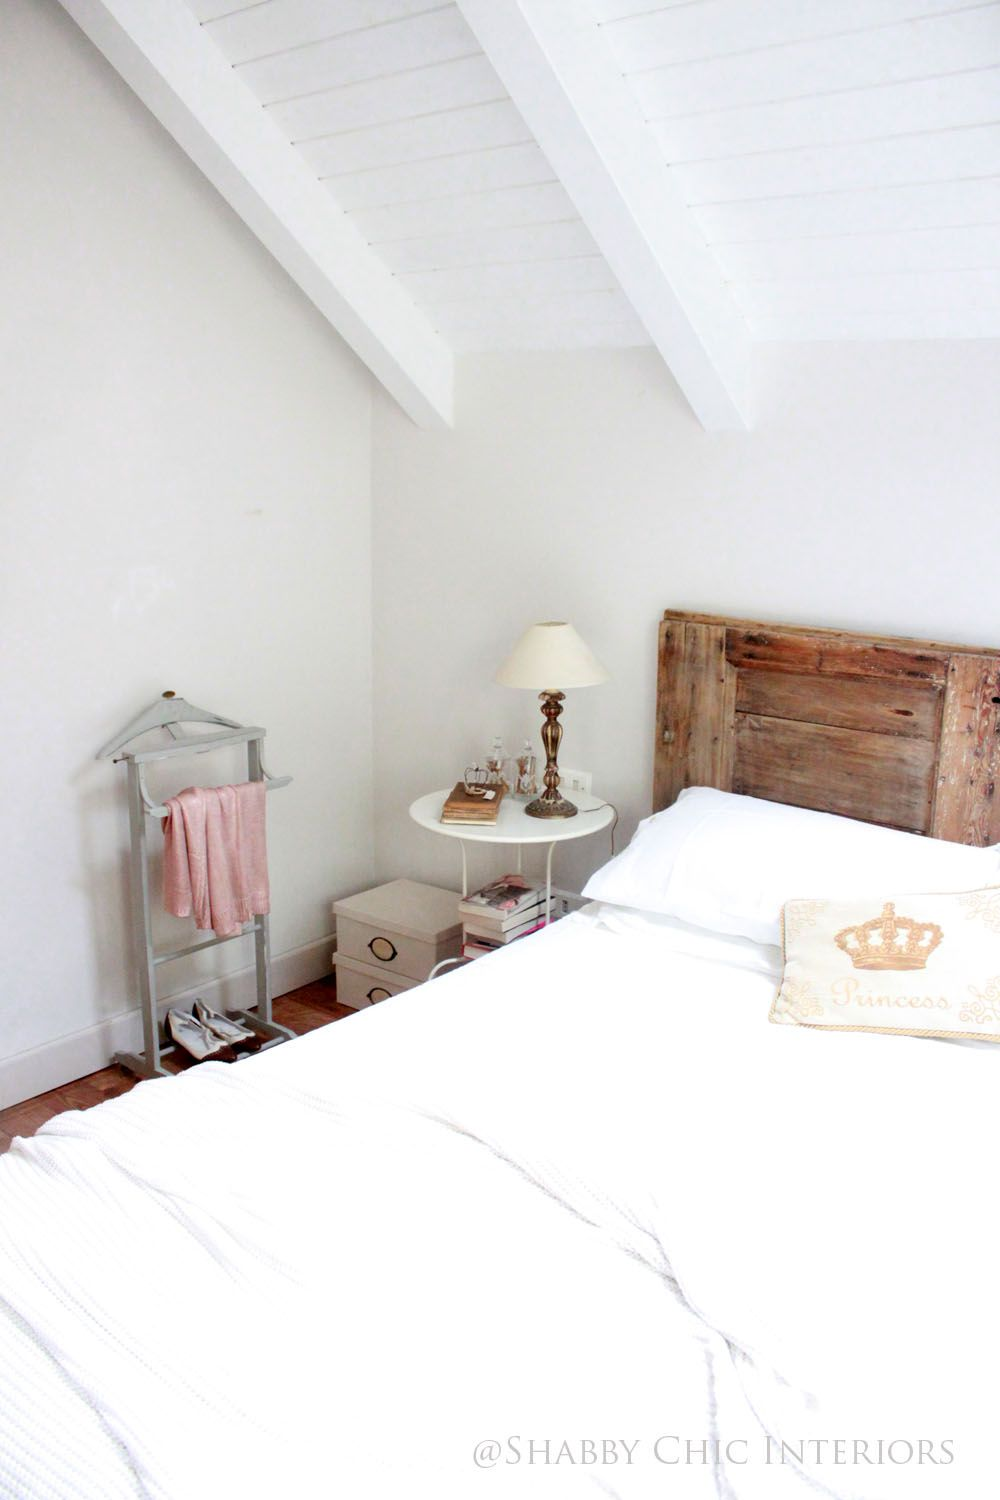 Shabby Chic Interiors: La mia camera da letto | interior | Pinterest